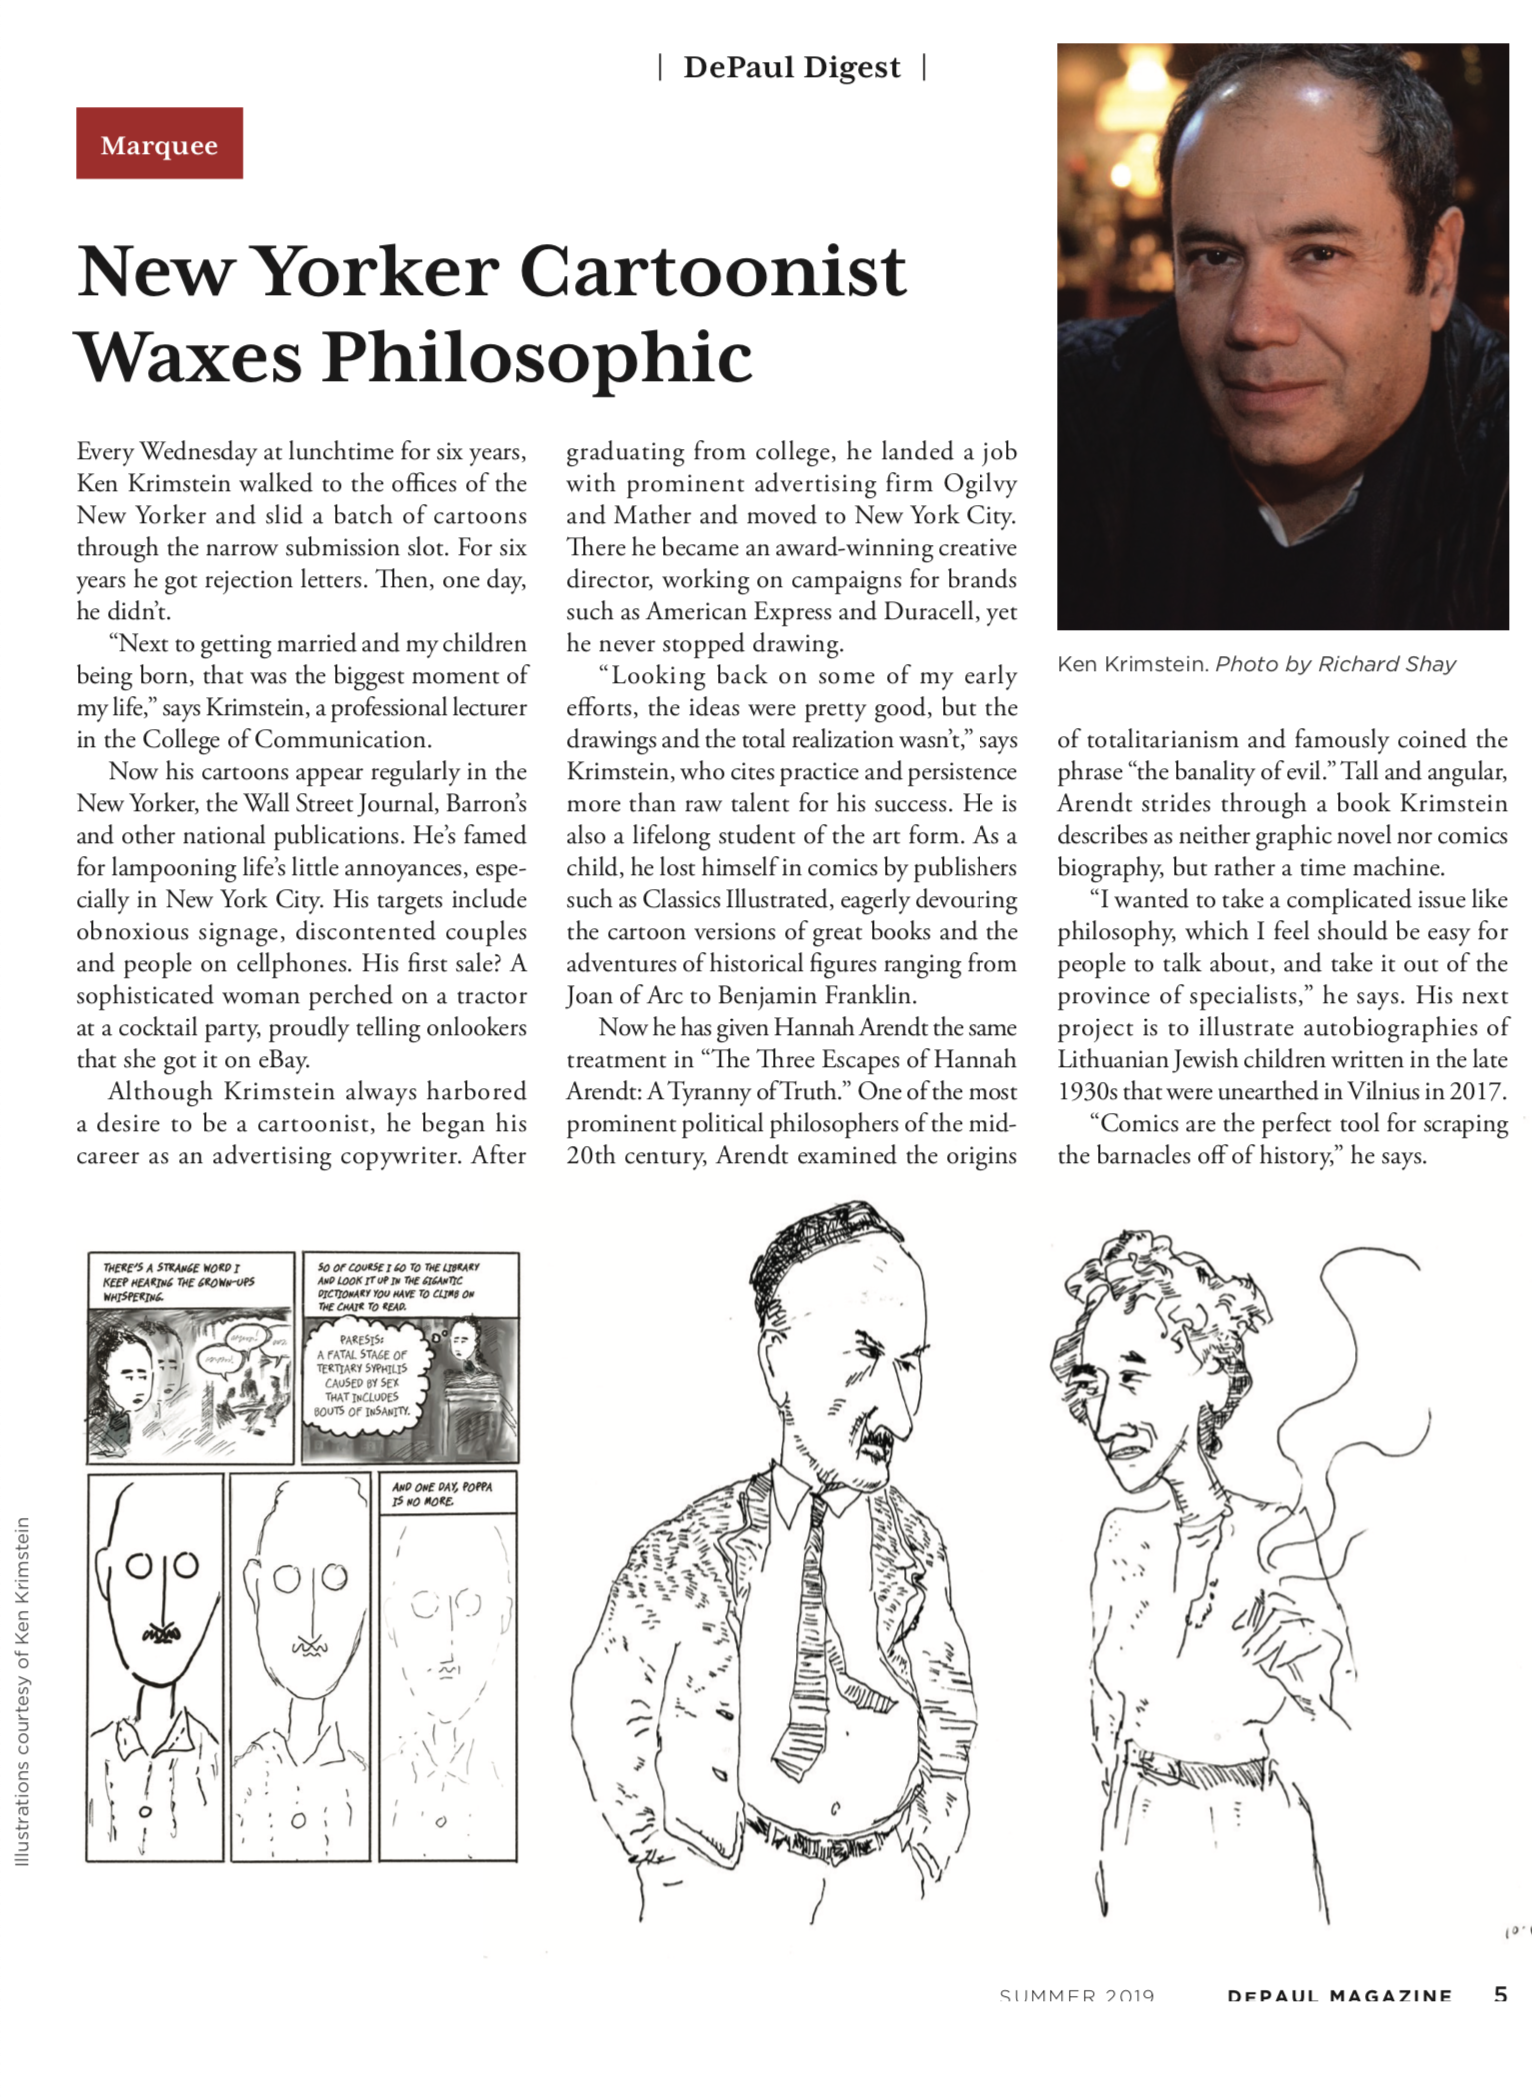 HERE IS AN ARTICLE FROM THE SUMMER ISSUE OF THE DePaul Magazine, AN ARTICLE FOCUSED ON THE TOPIC OF CREATIVITY.